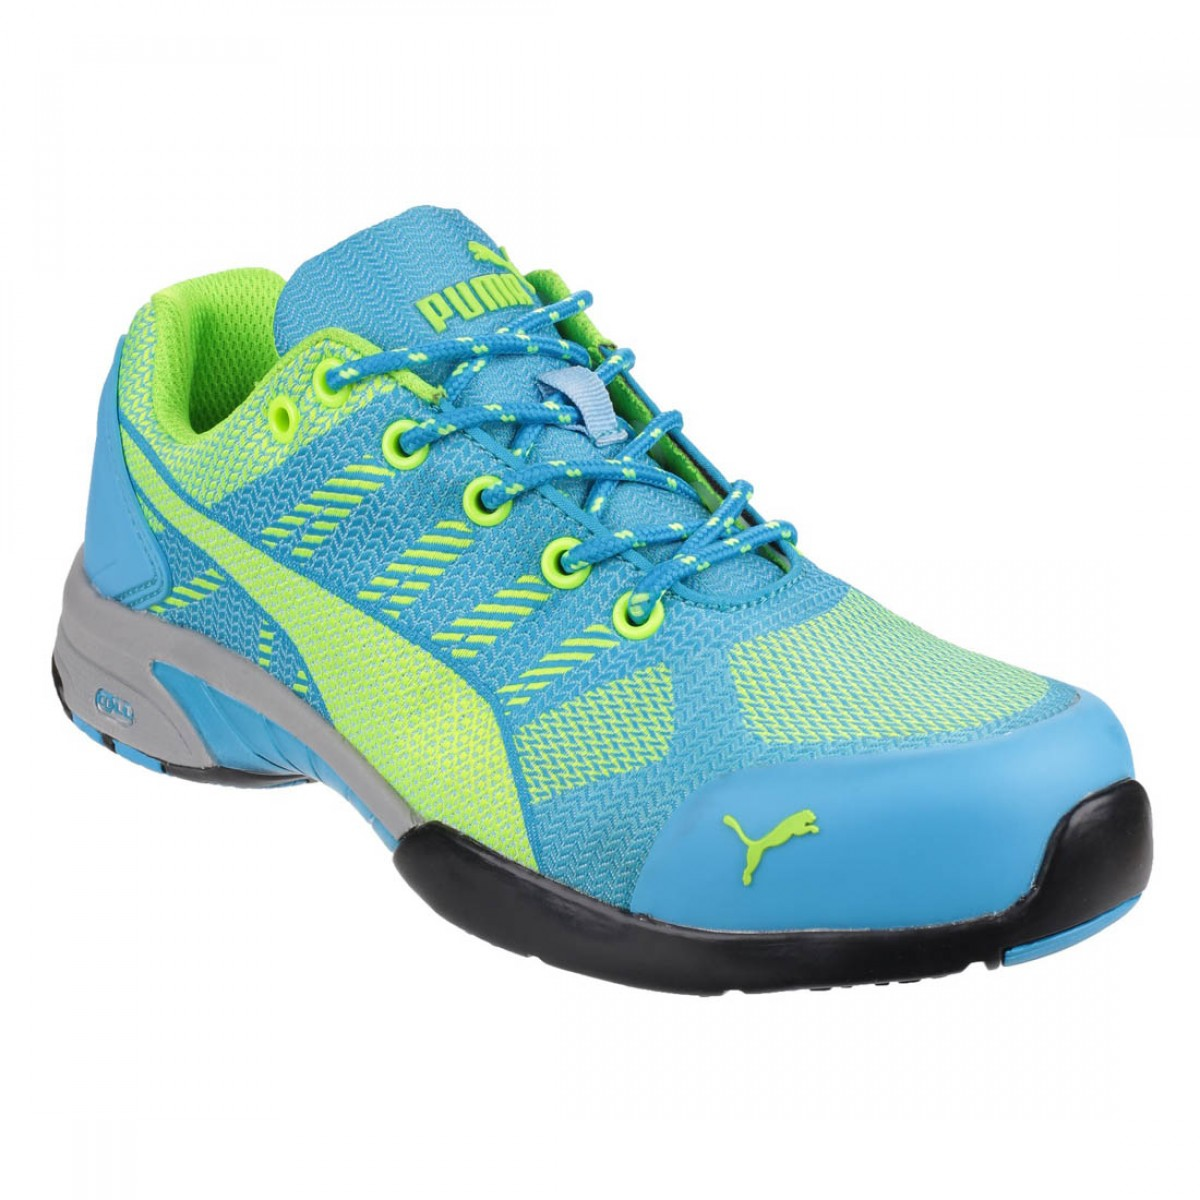 Puma Safety Celerity Knit Blue and Lime Ladies Safety Trainer Shoes 81006befb